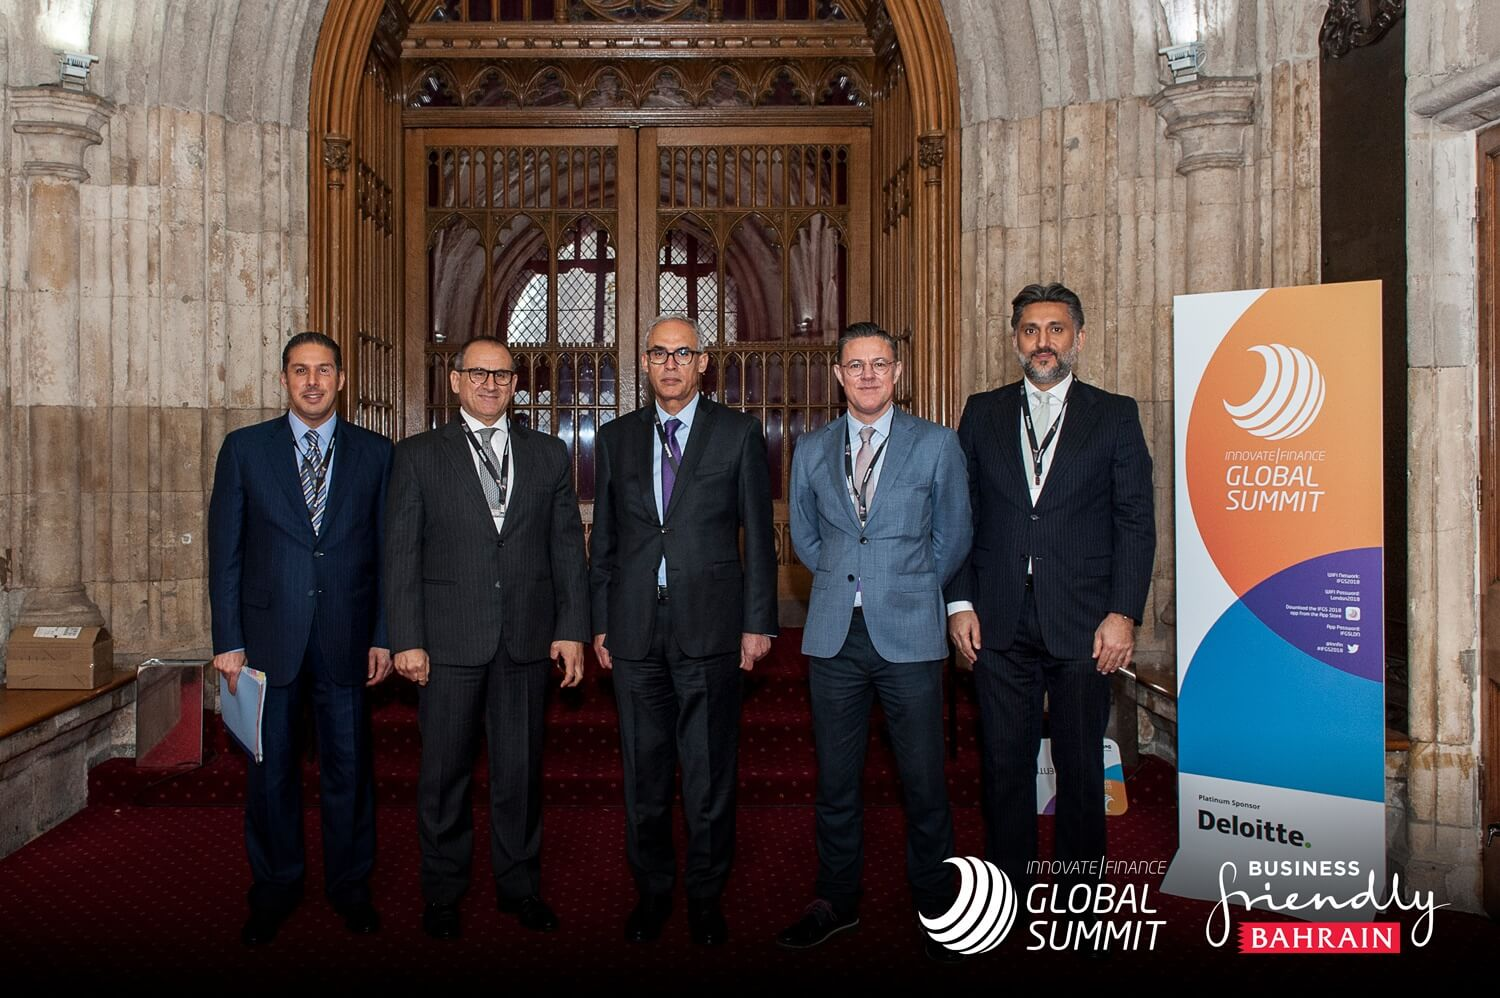 Bahrain Participates in Innovate Finance Global Summit 2018